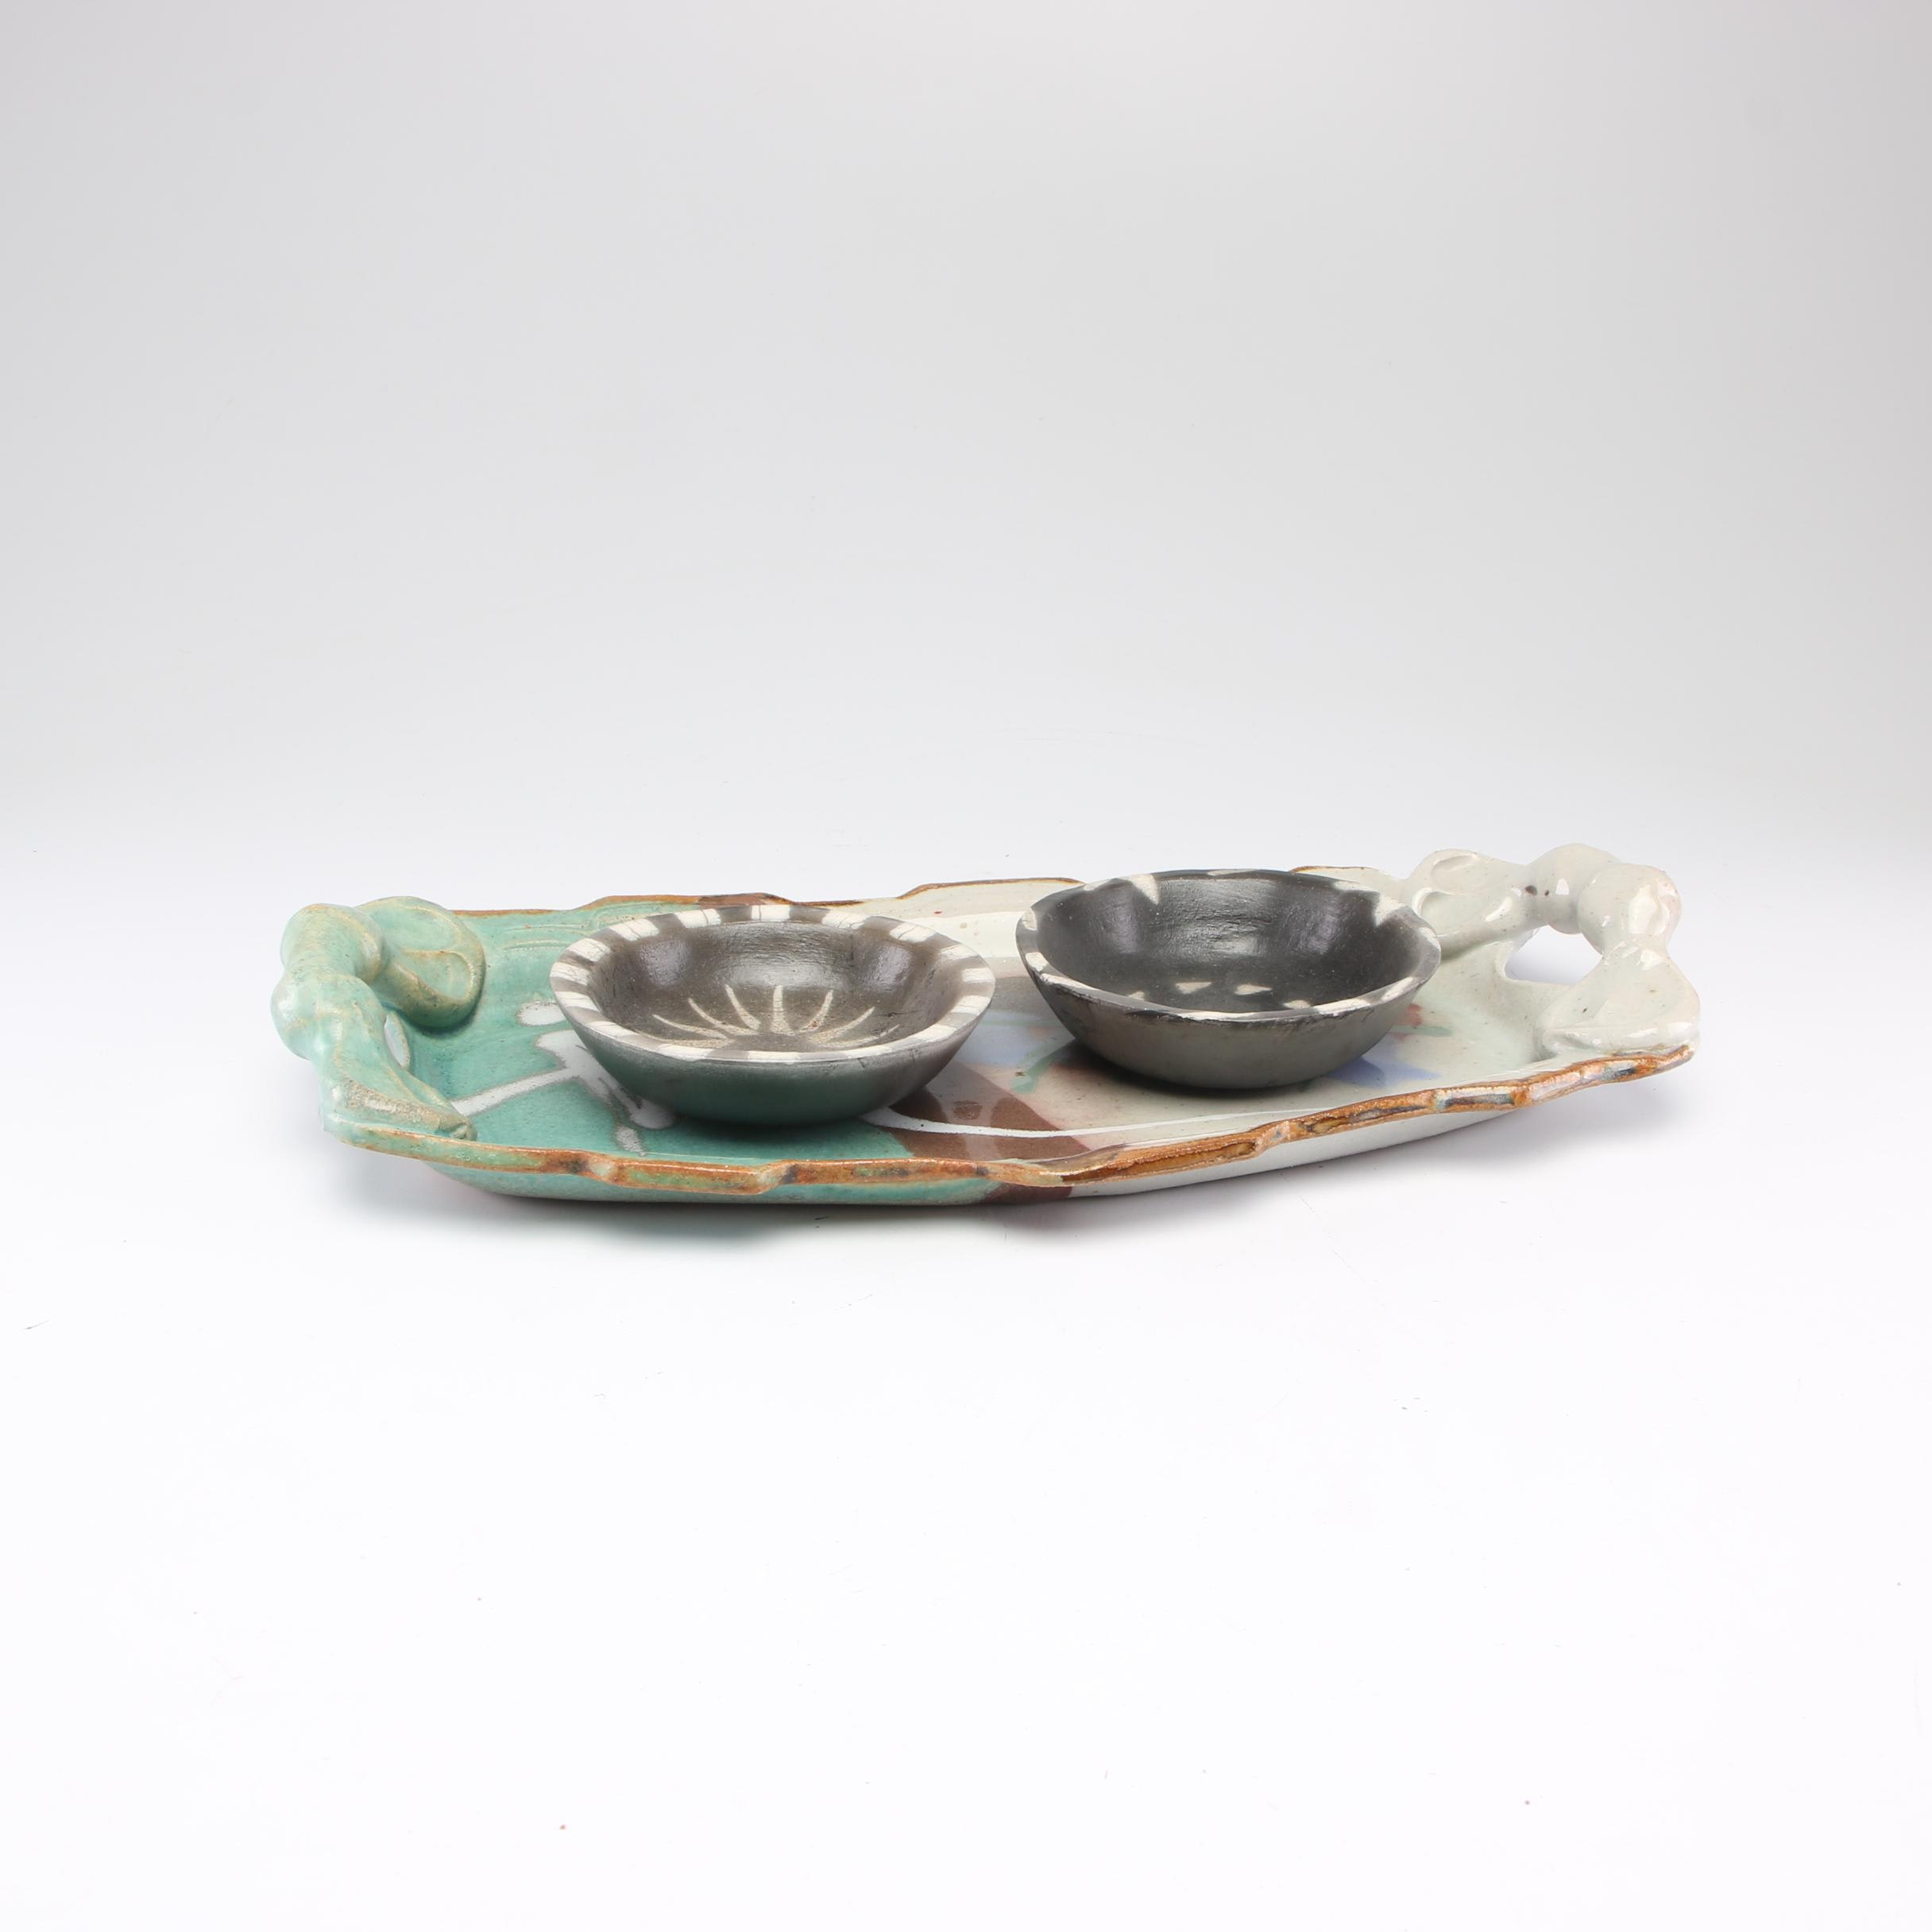 Handbuilt Stoneware Serving Platter with Raku Fired Stoneware Decorative Bowls